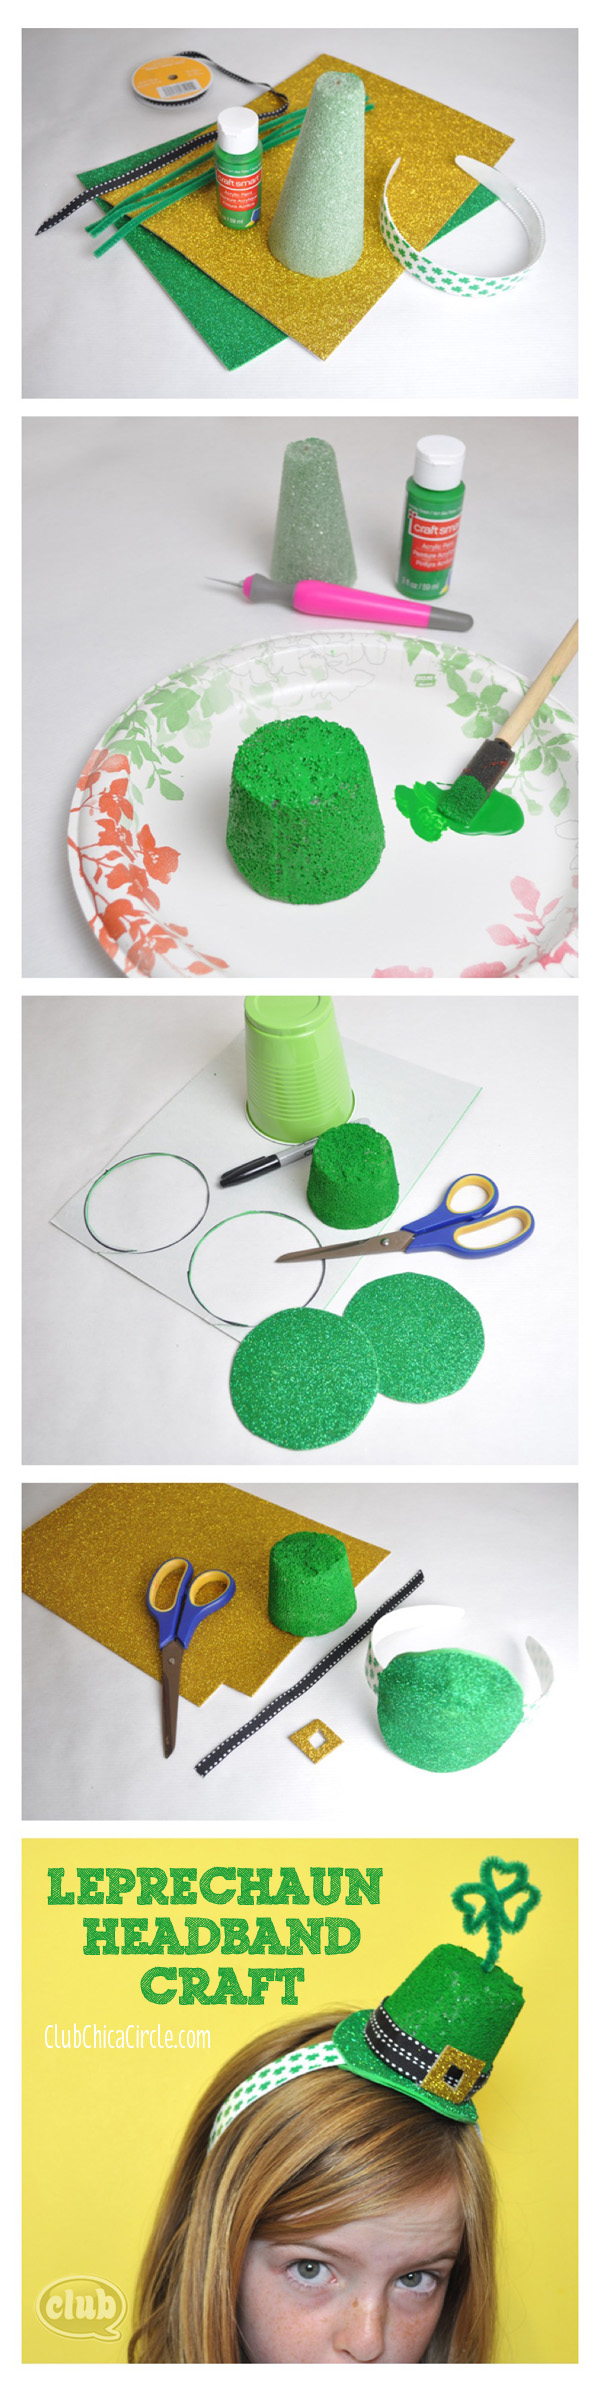 Leprechaun Headband craft idea